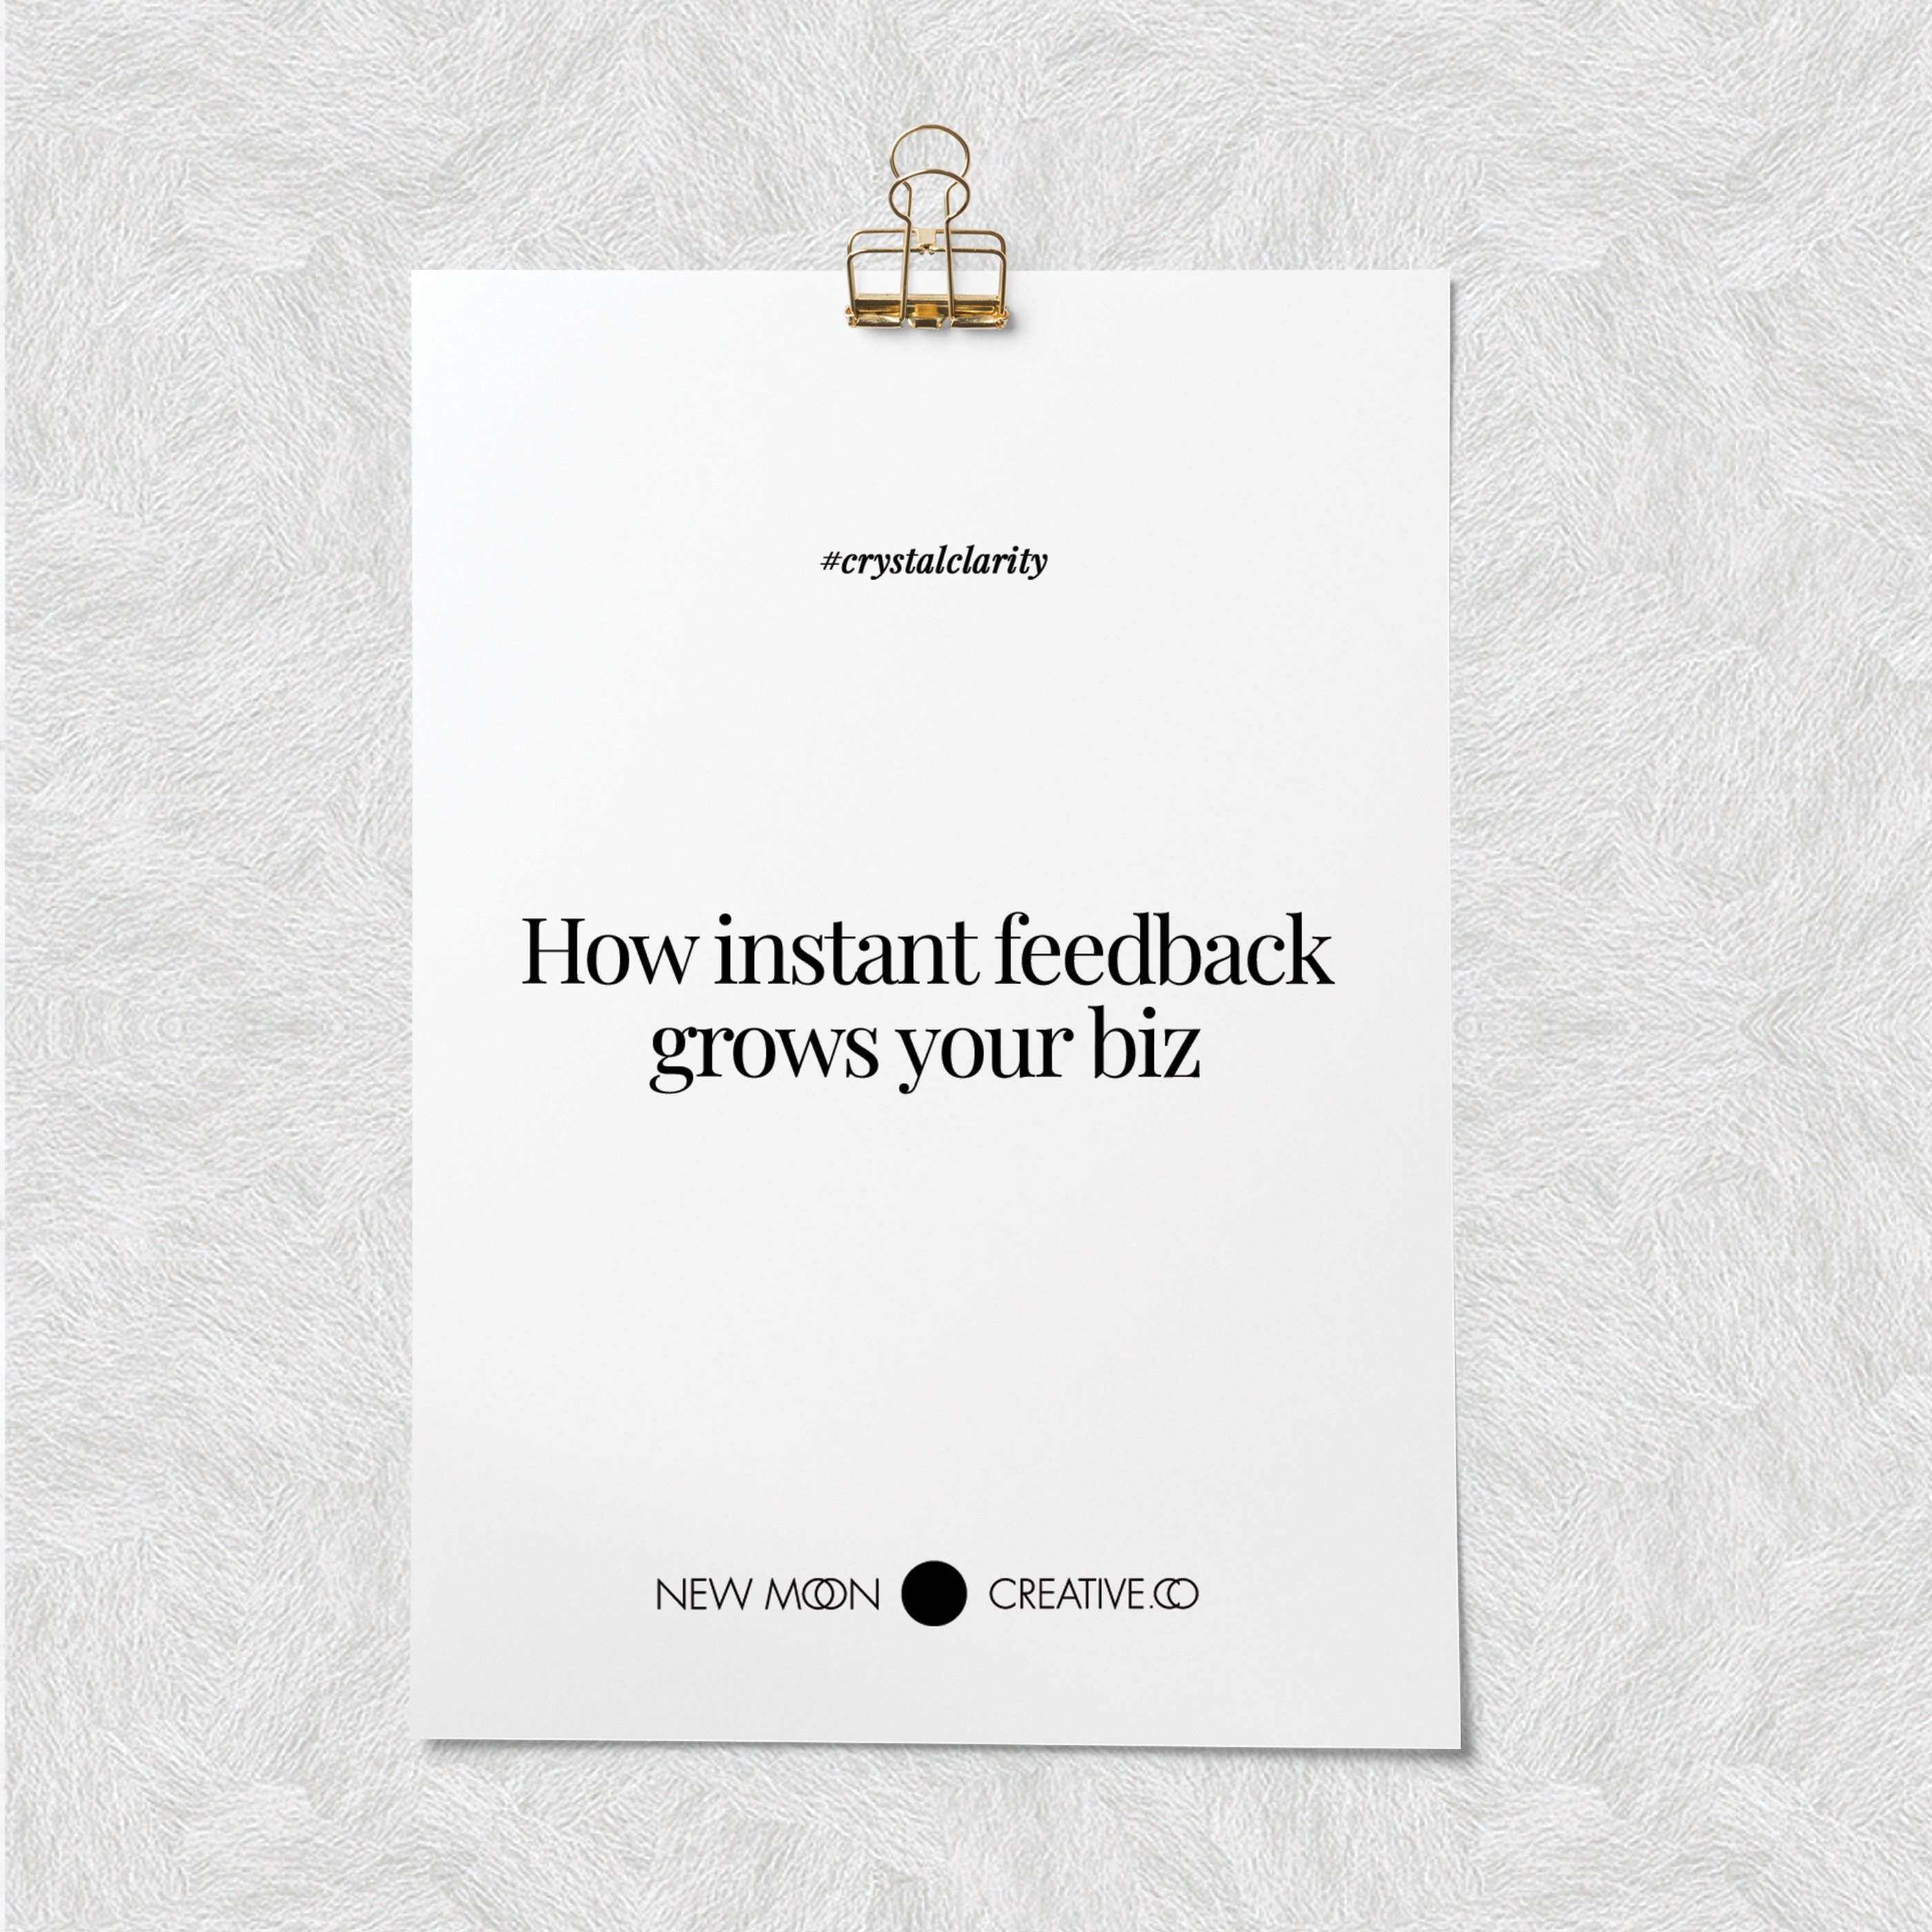 How instant feedback grows your biz 🌱